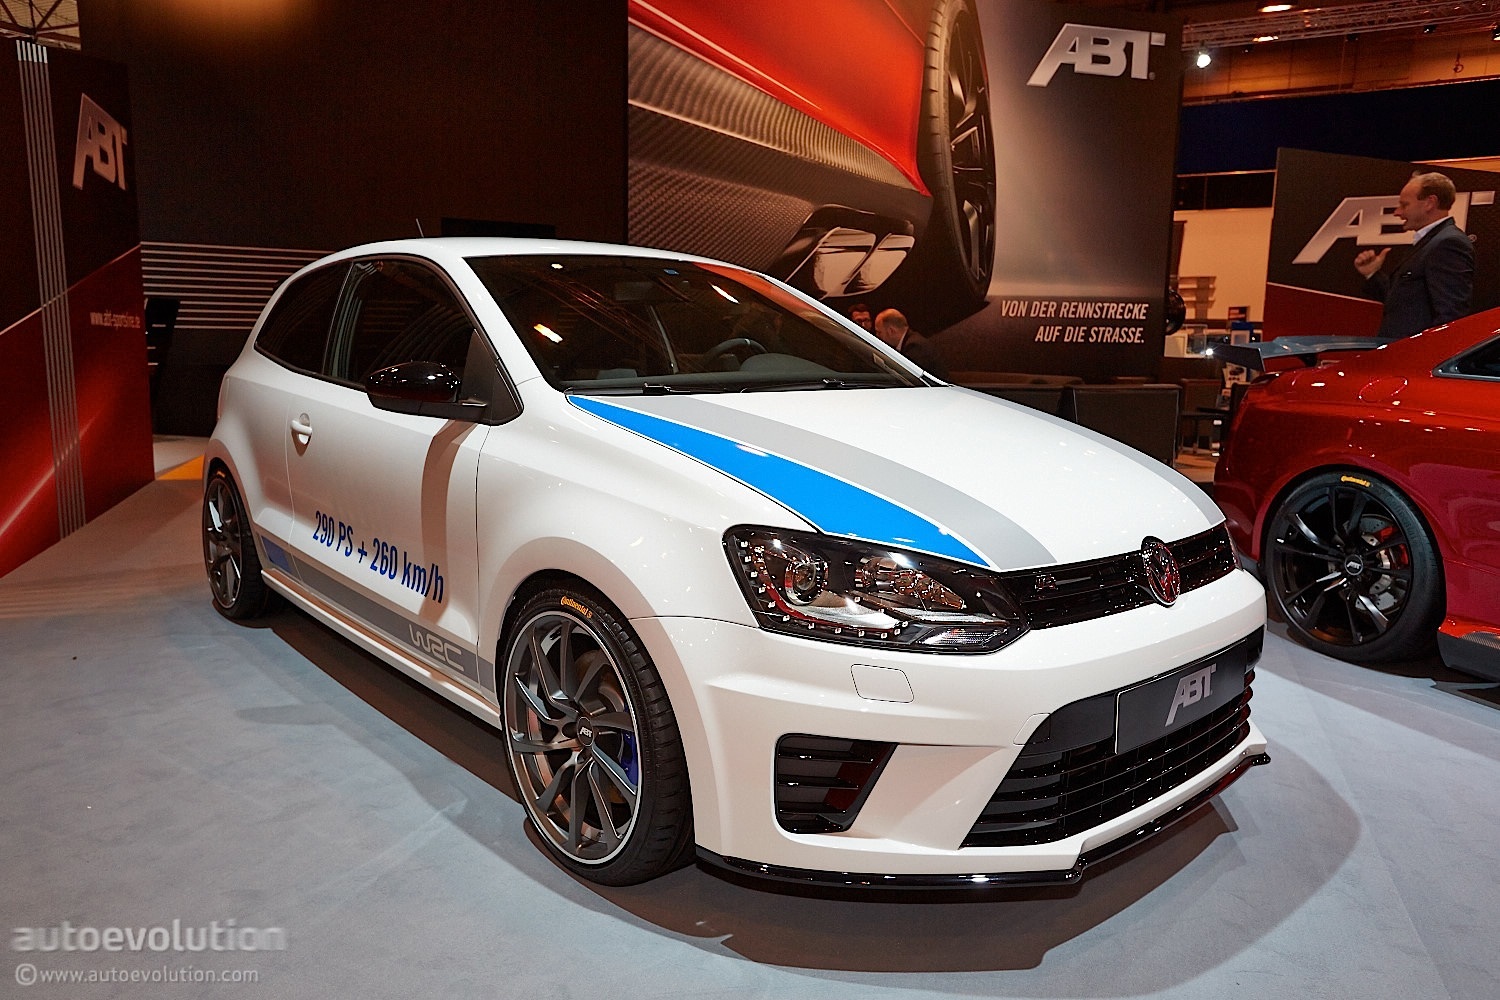 2015 volkswagen polo r four wheel drive 230 hp hot hatch coming autoevolution. Black Bedroom Furniture Sets. Home Design Ideas